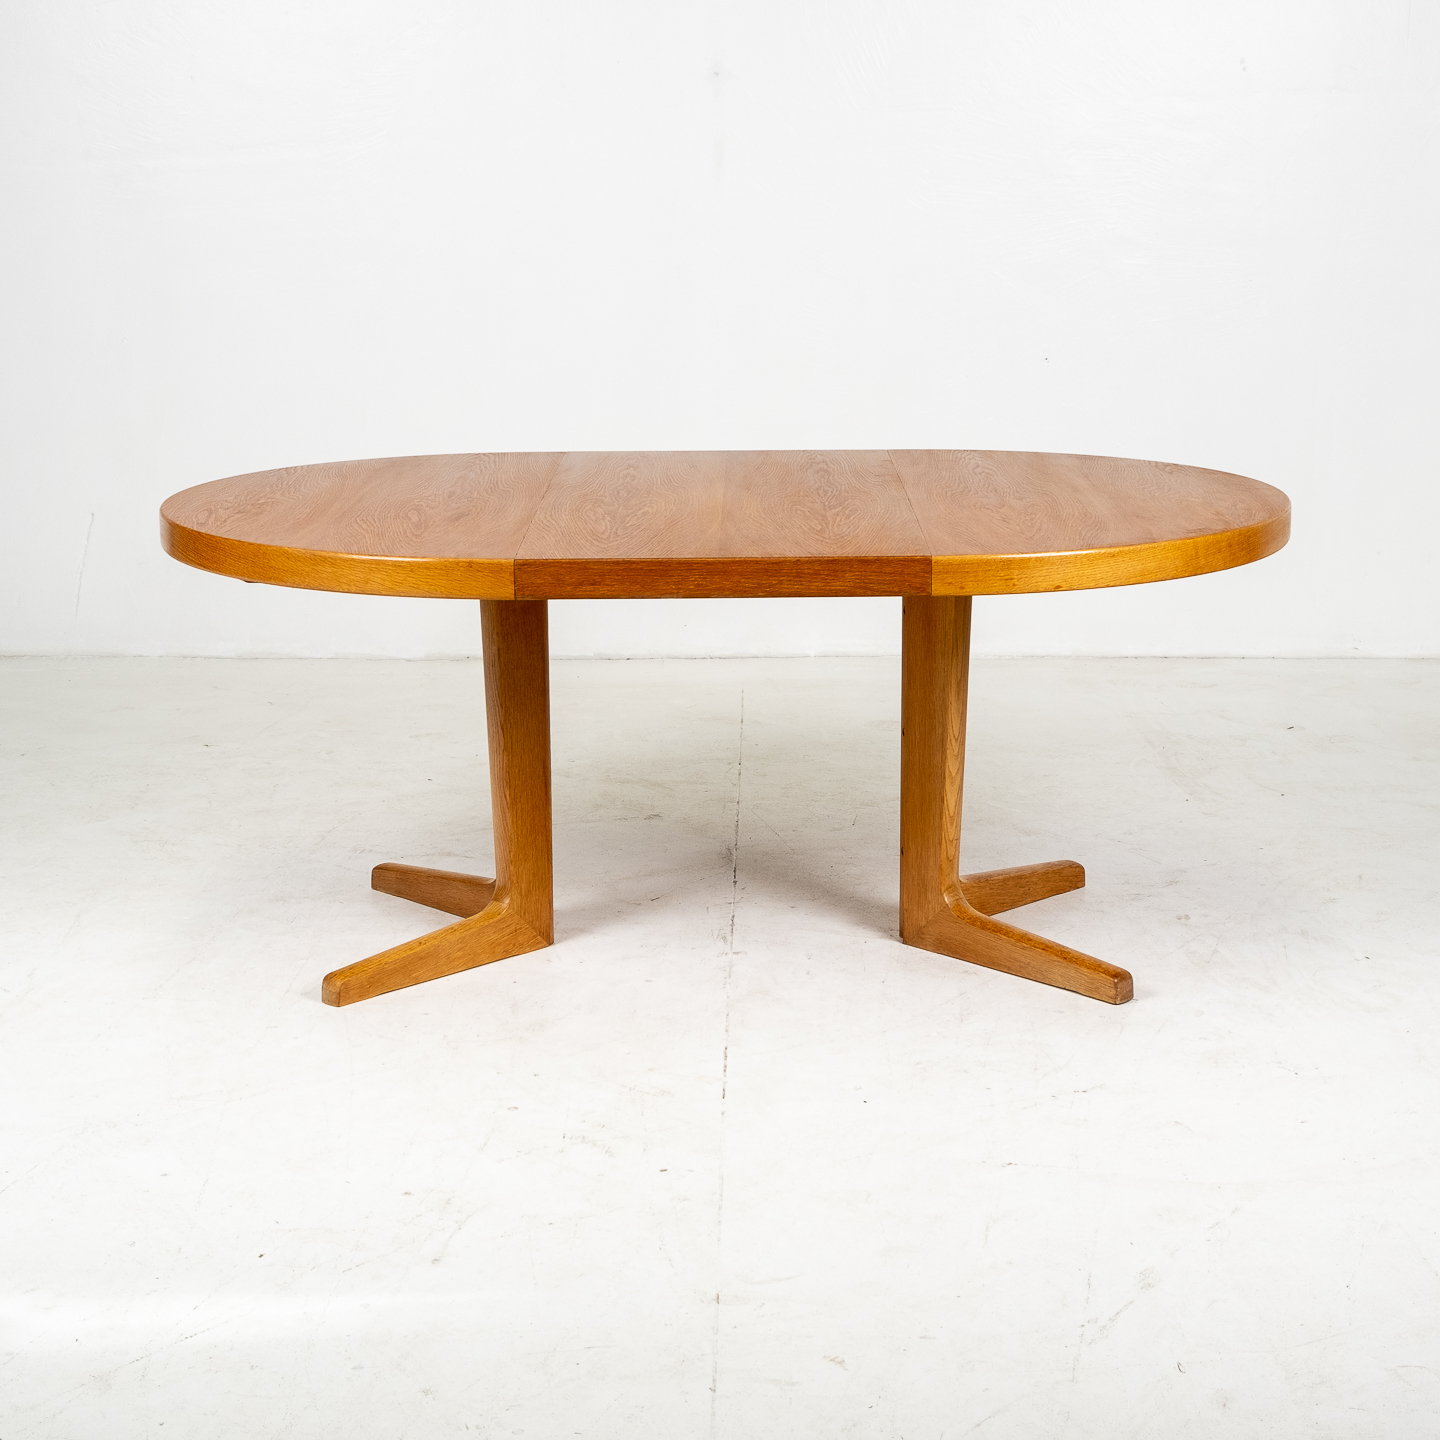 Round Pedestal Dining Table In Oak With Three Extension Leaves, 1960s, Denmark03